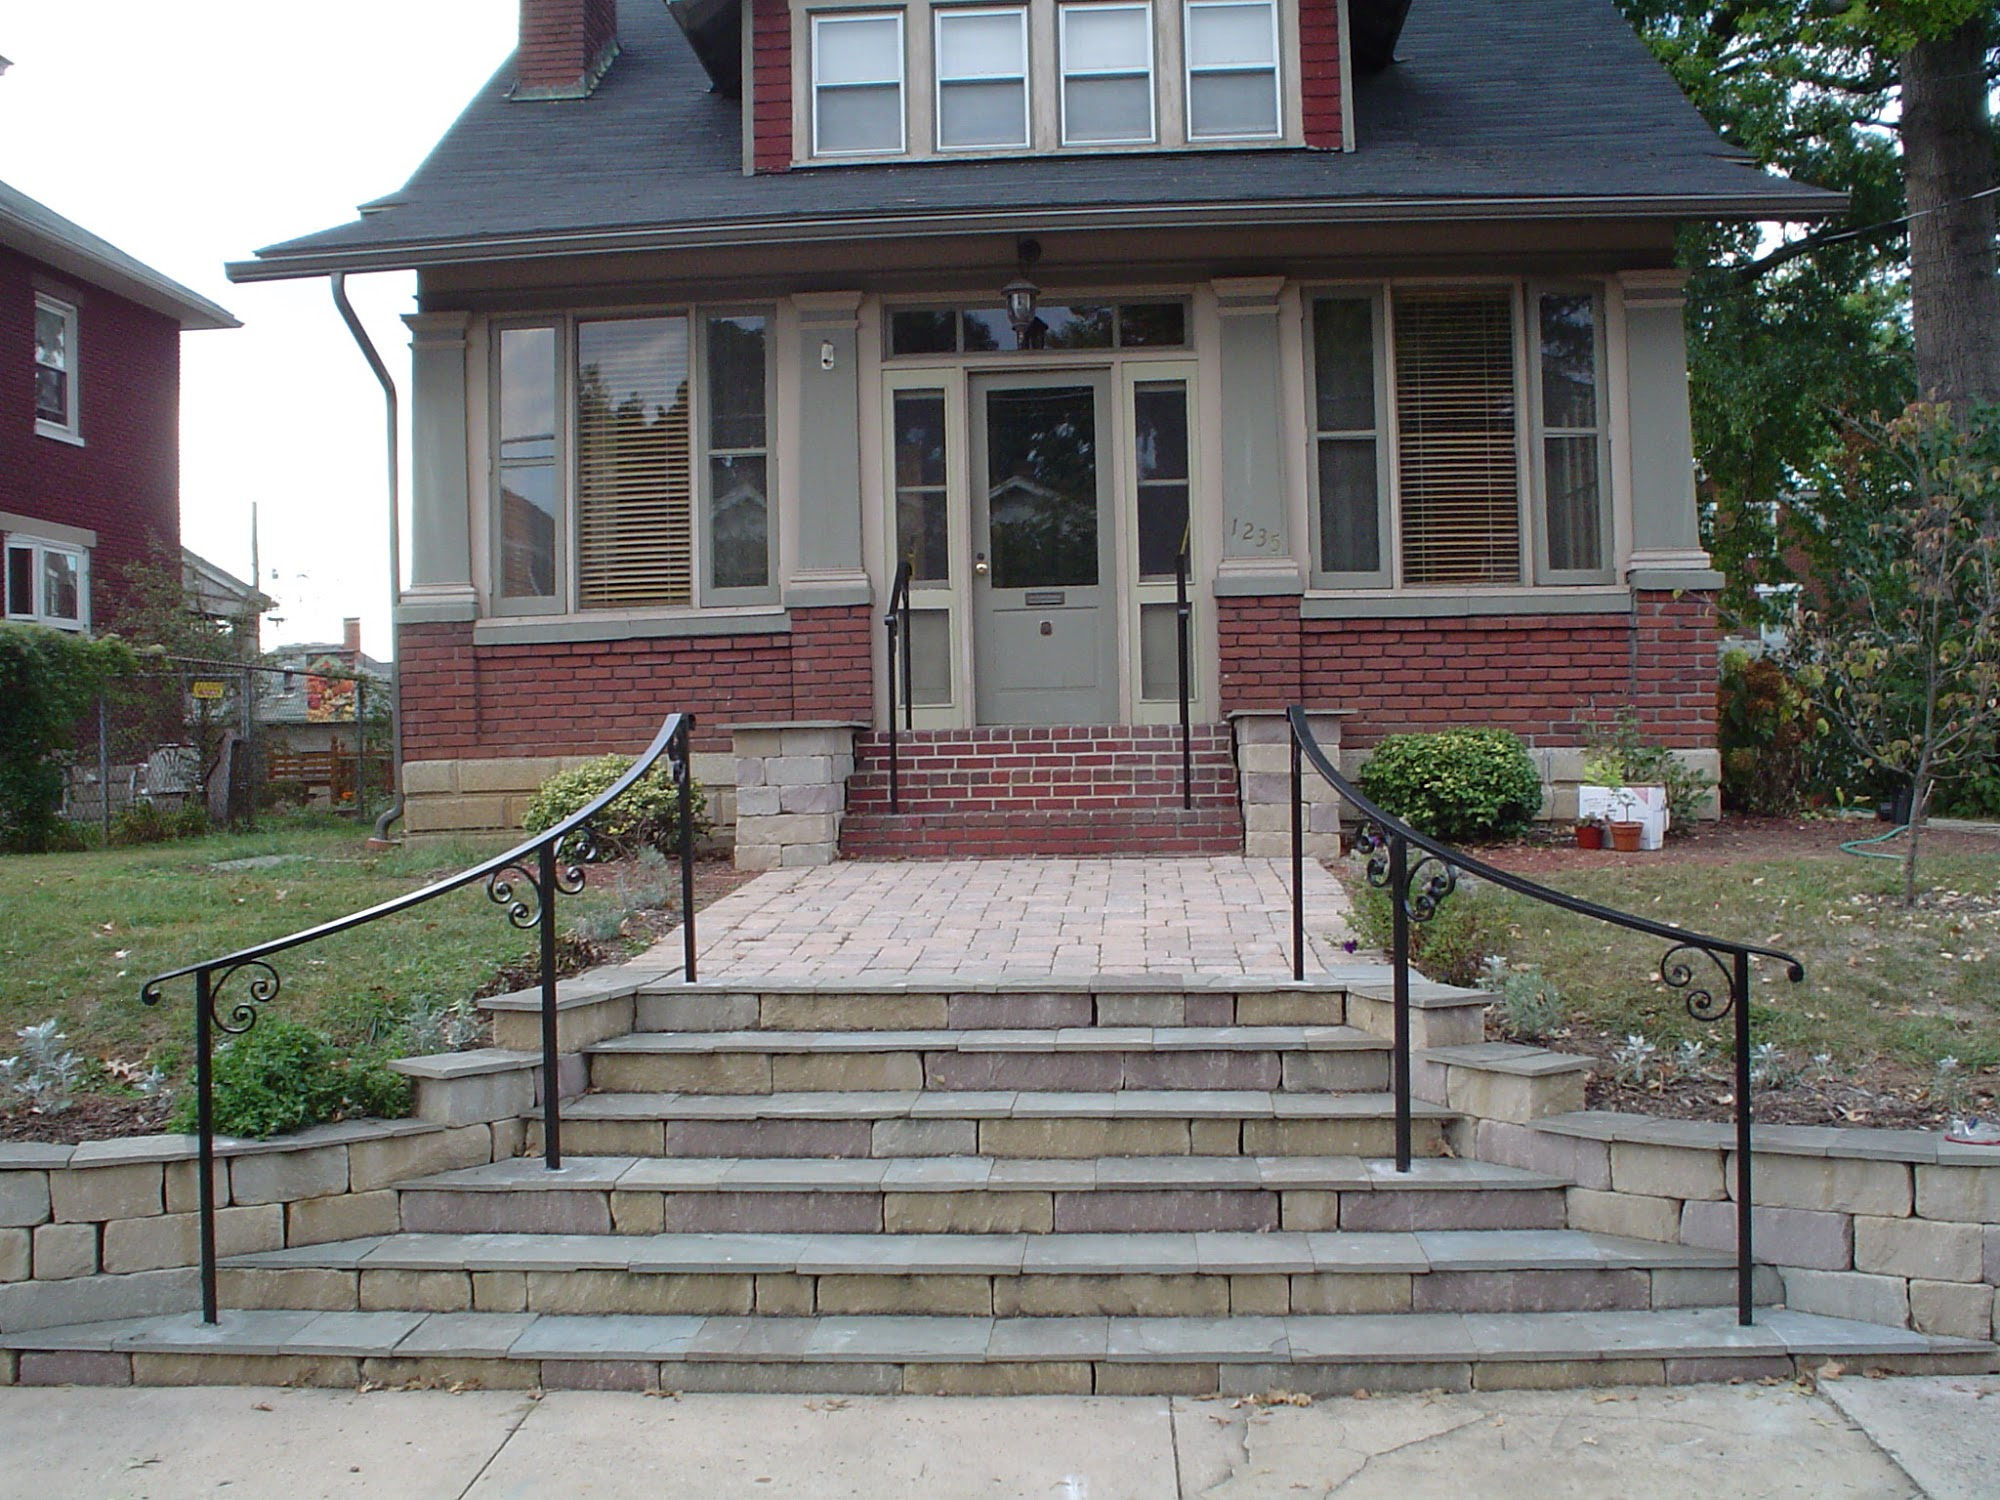 Porch : Brick Front Porch Steps Curved on front entrance steps designs, house entry designs, house front porch designs, cabin front porch designs, front stoop designs, house walkway designs, stone front house designs, house sidewalks designs, backyard step designs, basement step designs, small front porch designs, concrete front steps designs, brick paver step designs, country front porch designs, house front stairs designs, front entrance flower bed designs, front wall designs, house sidewalks with negative grading, patio step designs, front entryway designs,